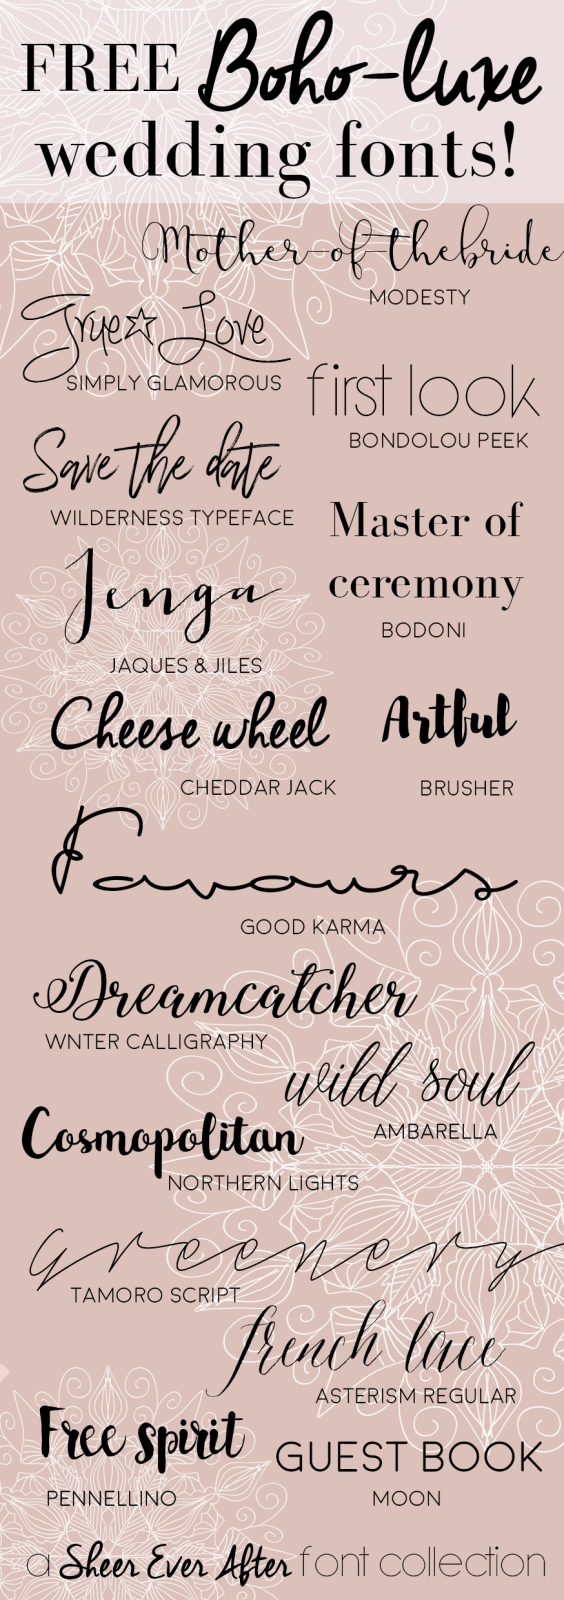 Free Boho-luxe fonts for your grahic wedding projects